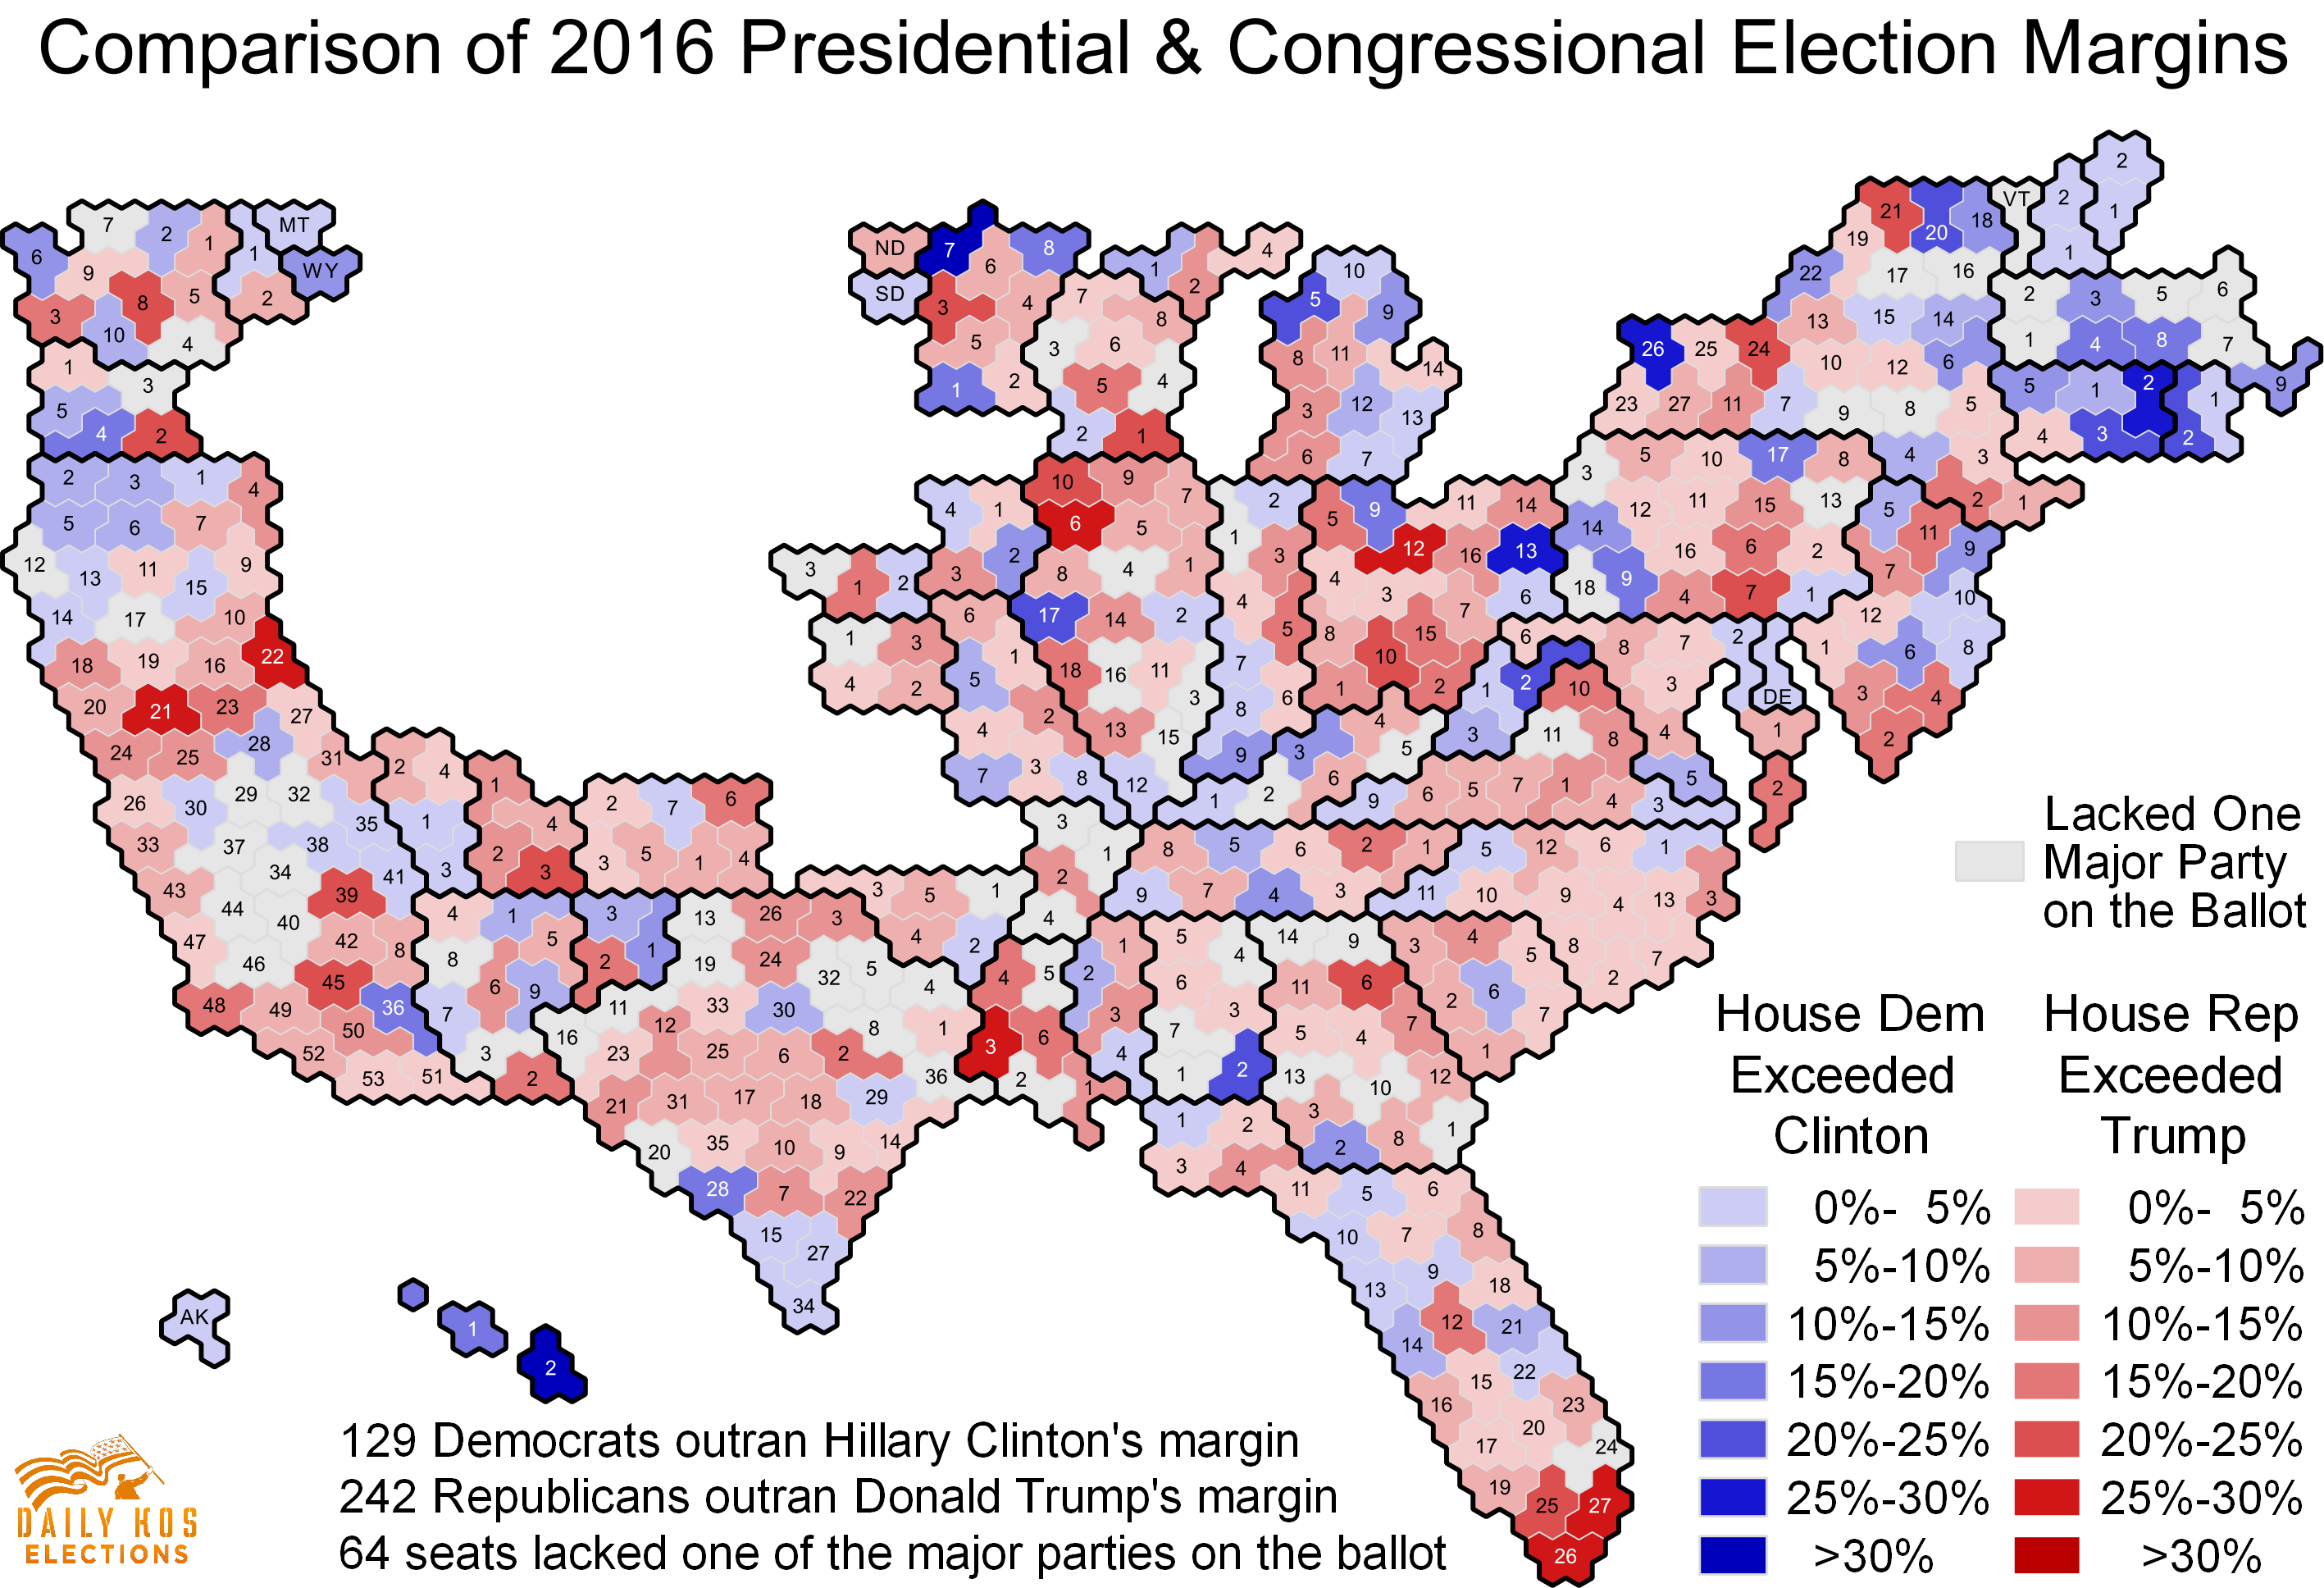 Check out our maps and analysis comparing 2016s presidential and